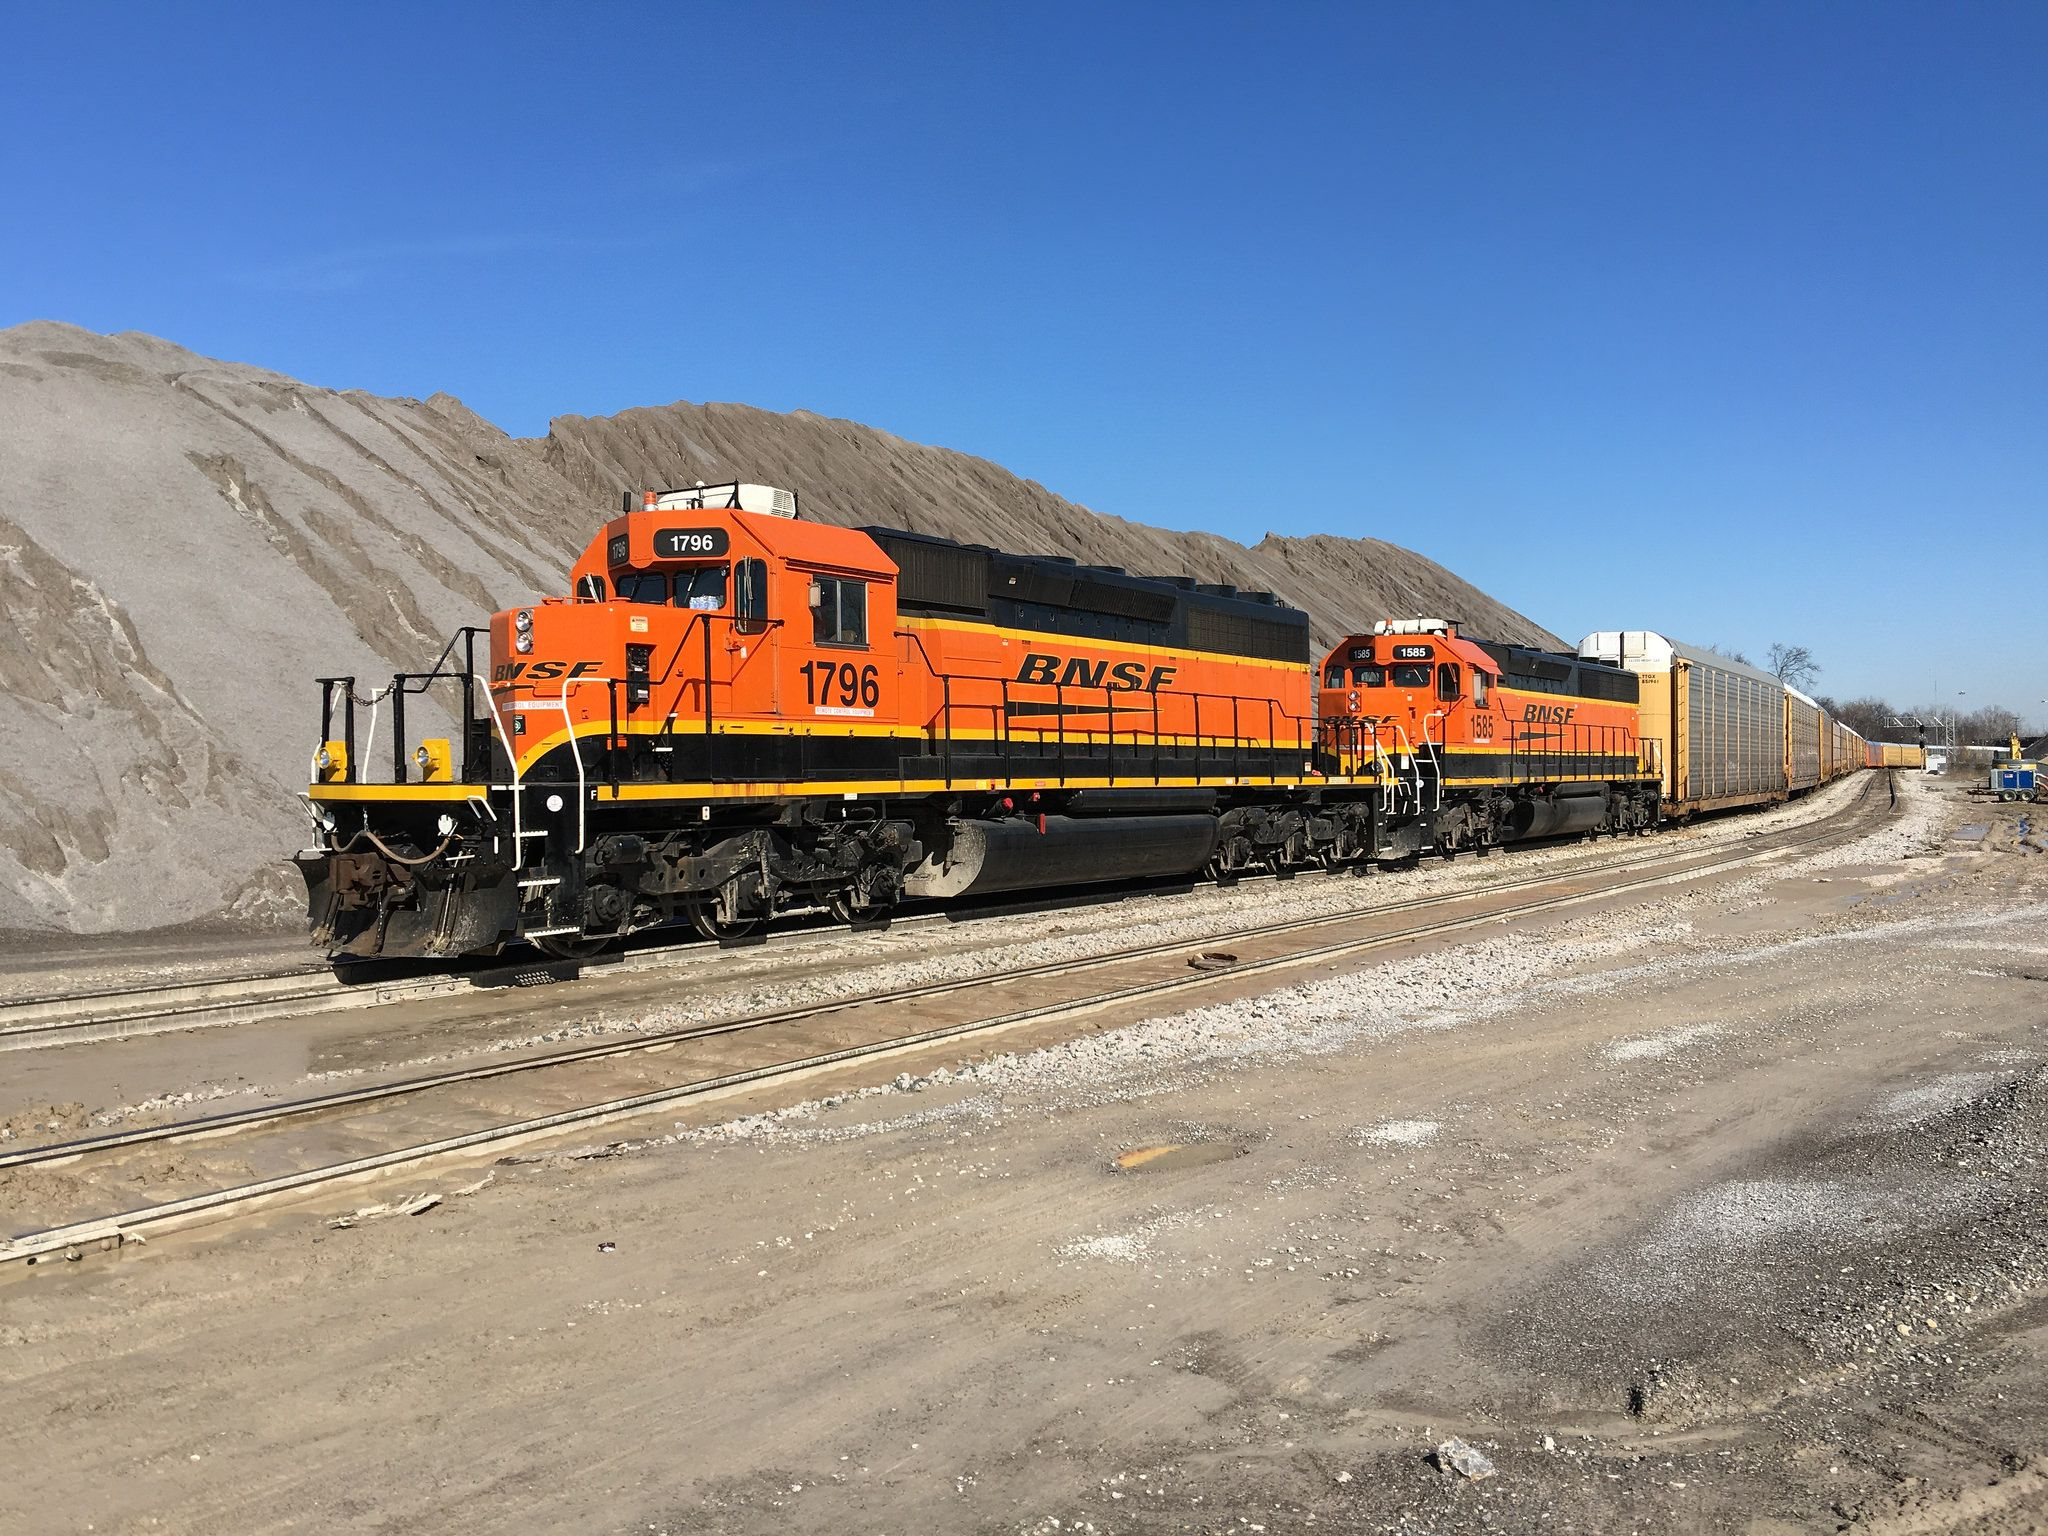 Bnsf Paint Schemes - Year of Clean Water